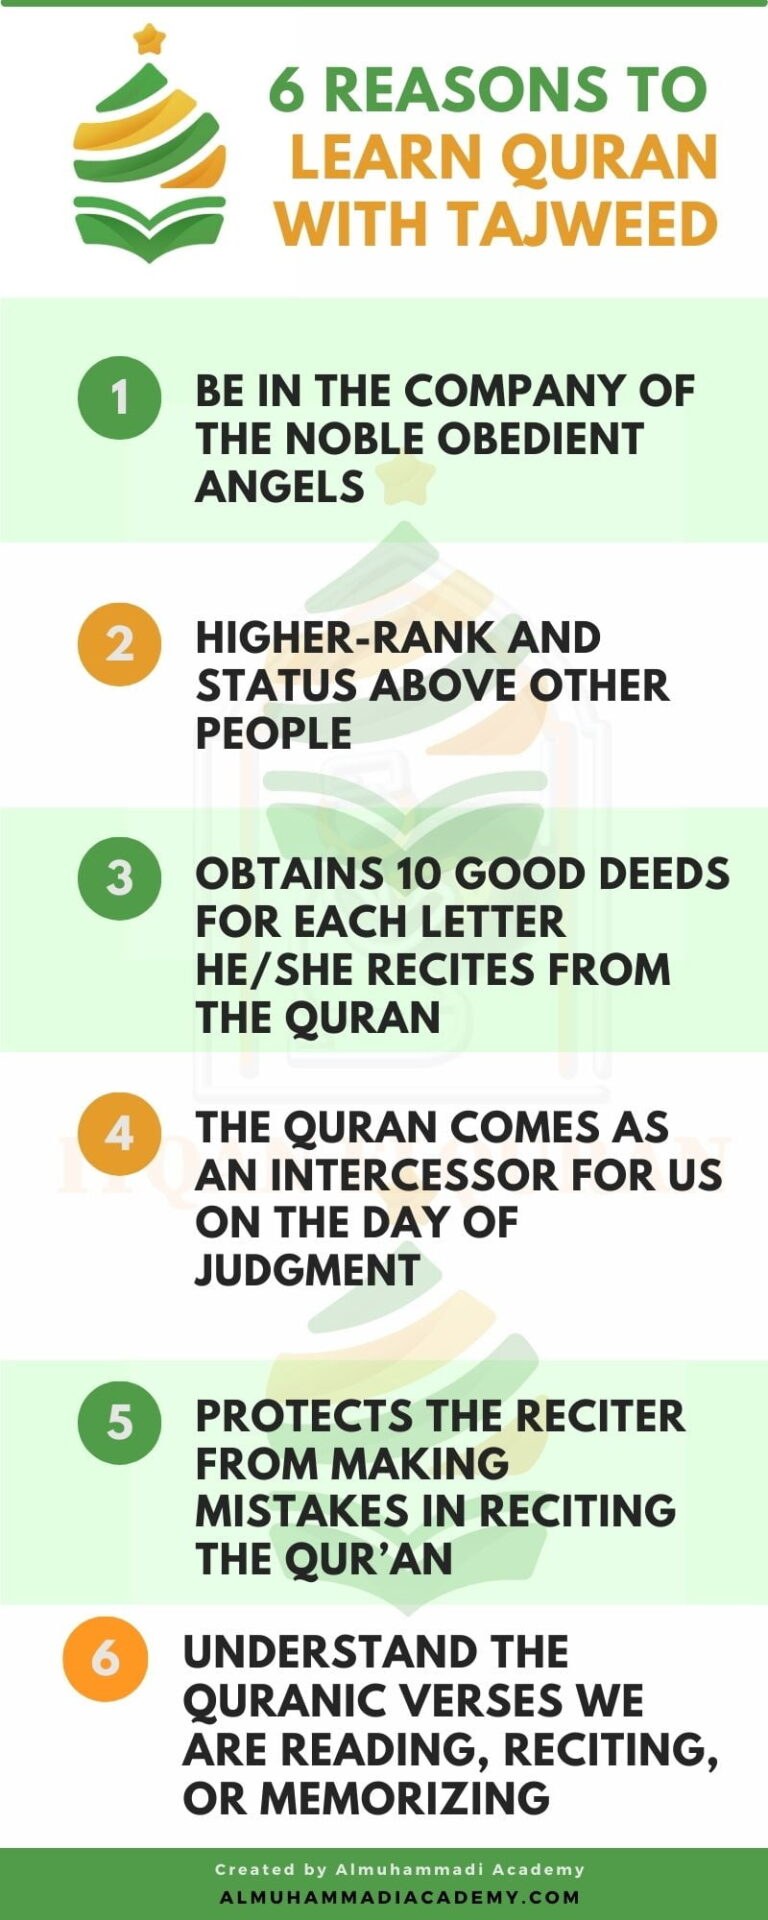 6 Reasons to Learn Quran with Tajweed (infographic by Almuhammadi Academy)